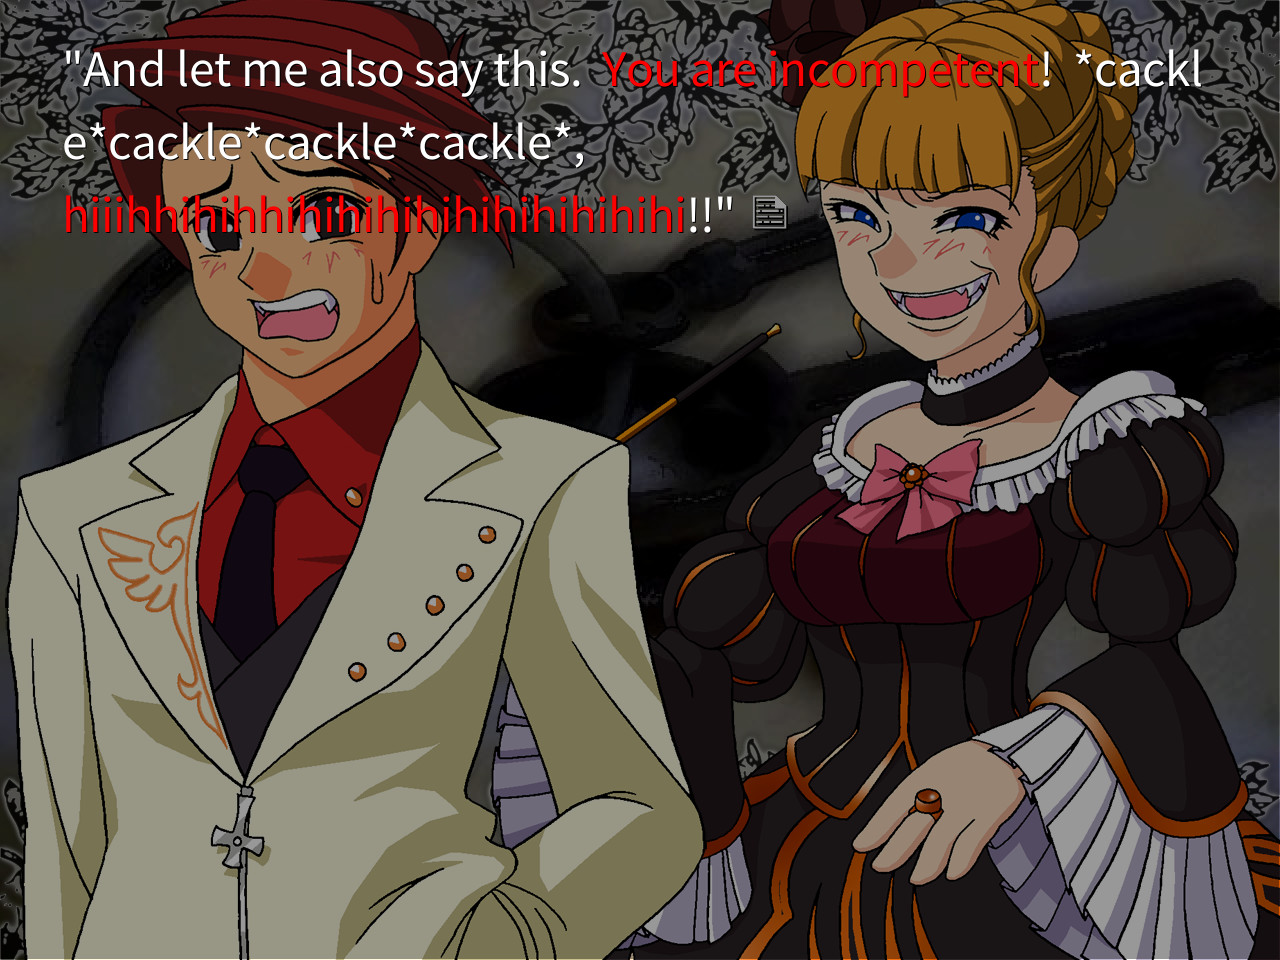 Beatrice and Battler in a screenshot from Umineko no Naku Koro Ni where she's telling him in the red truth that he is incompetent.